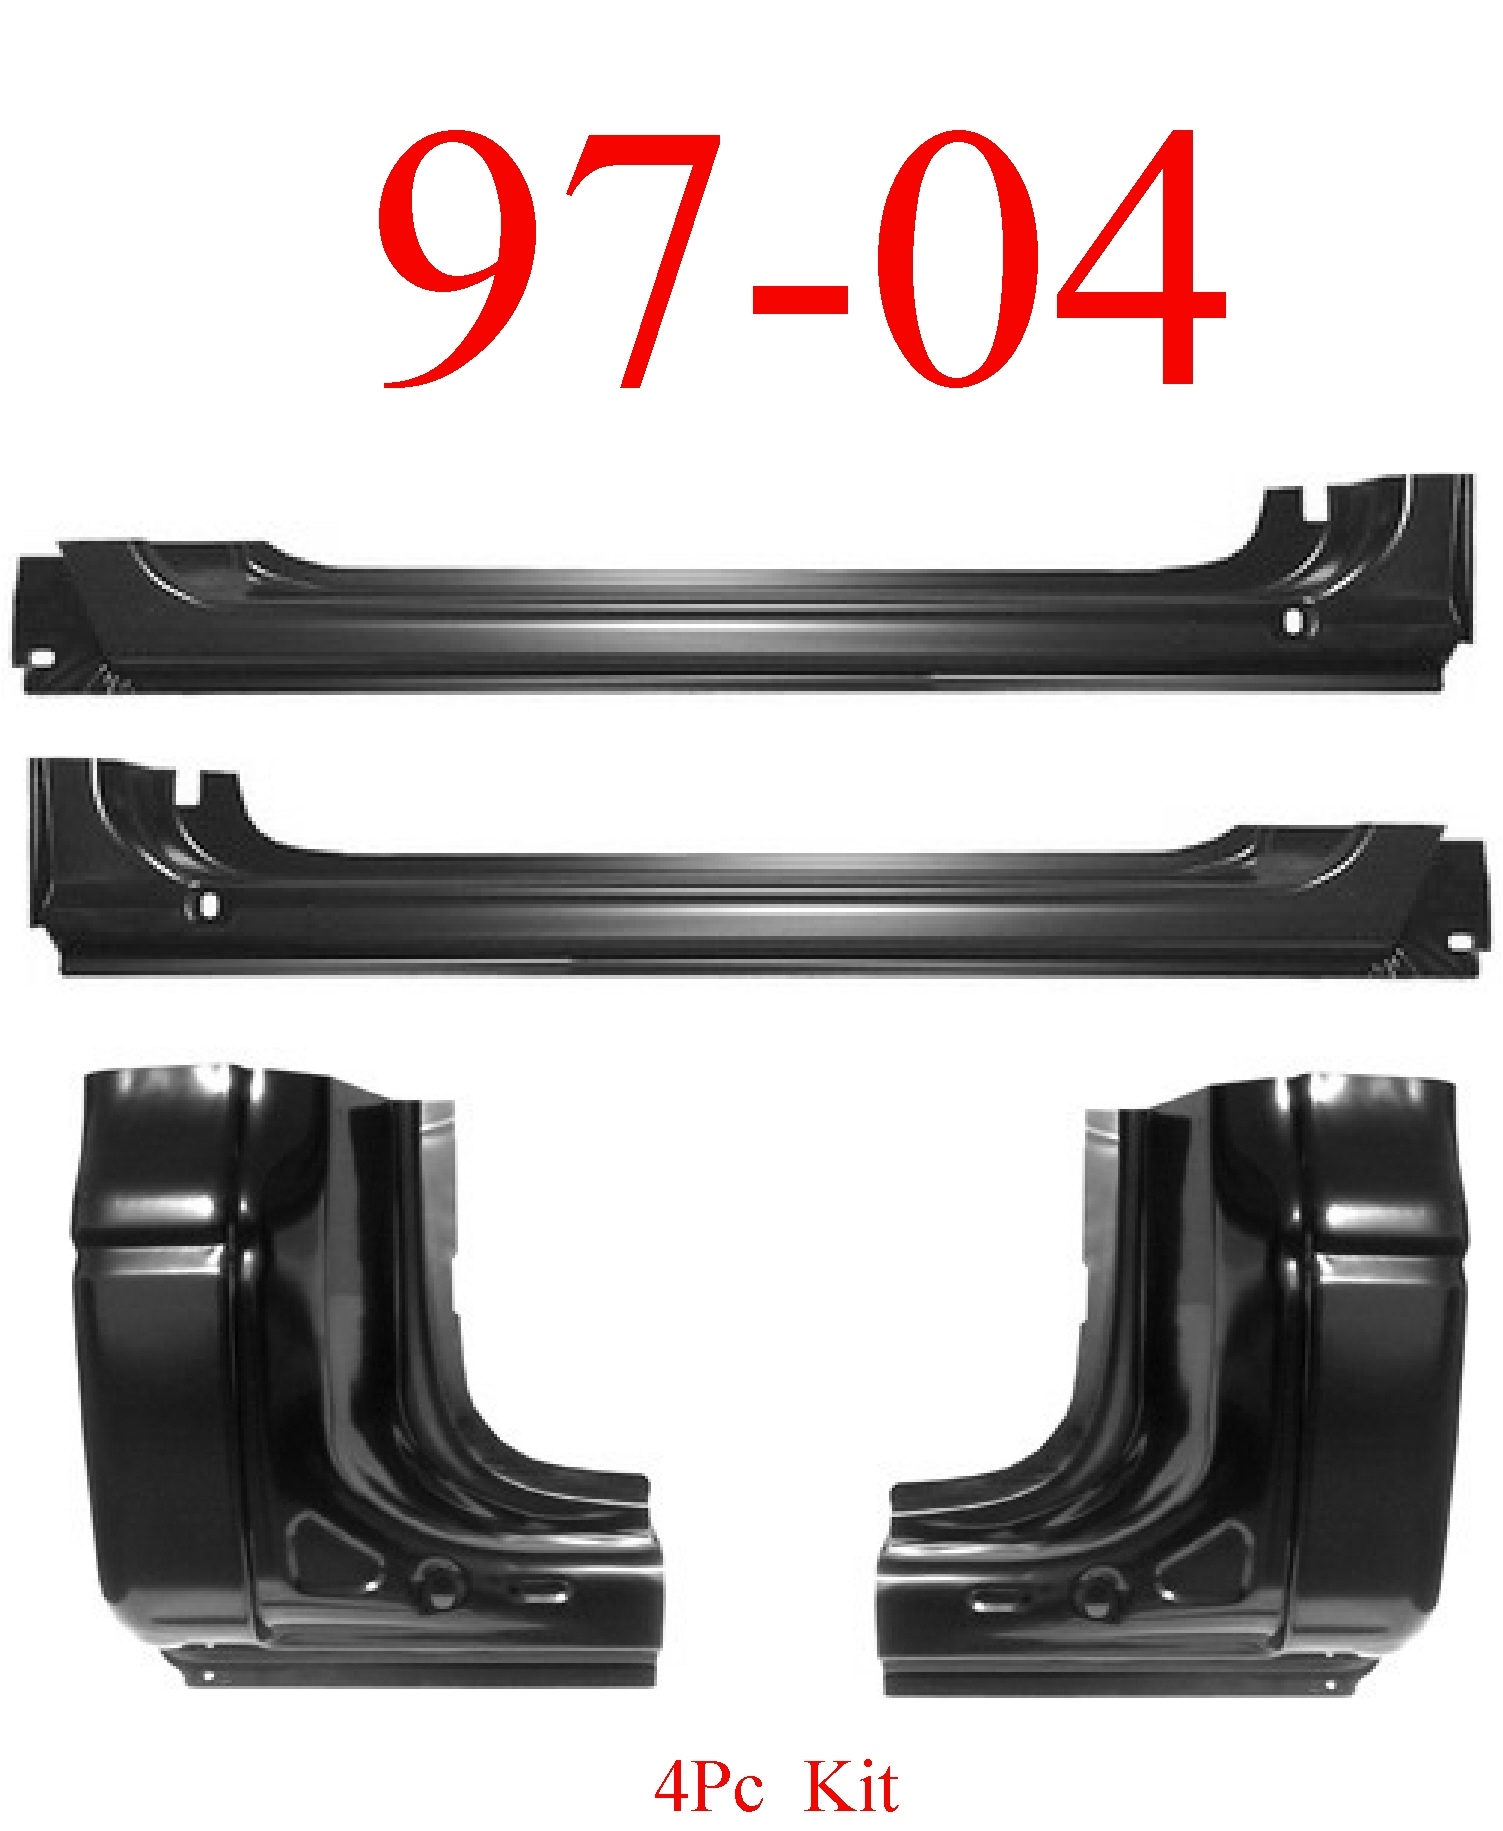 97-04 Dodge Dakota 4Pc Rocker & Regular Cab Corner Kit